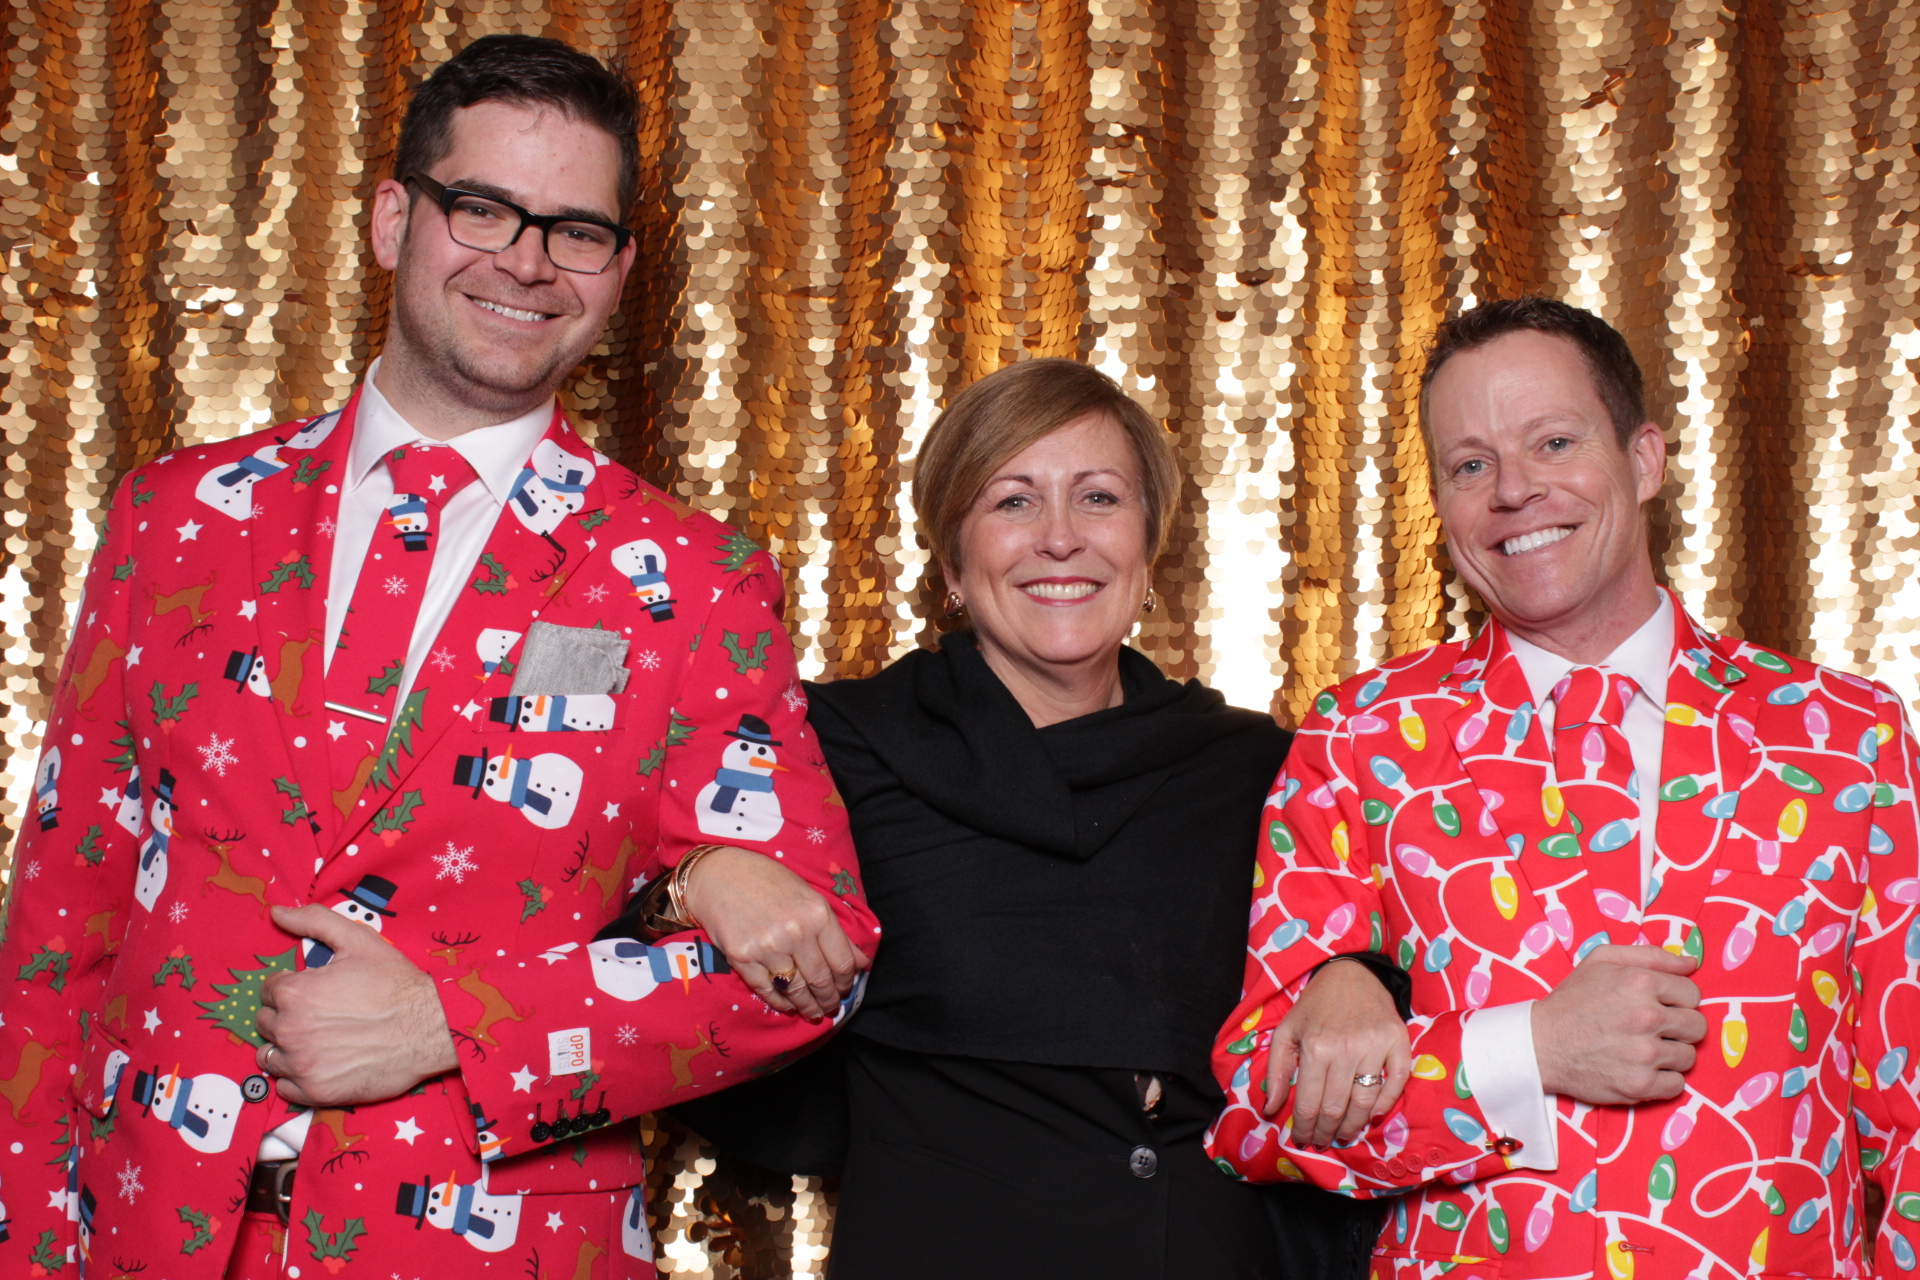 KENNEDY CENTER HOLIDAY PARTY | HOT PINK PHOTO BOOTH